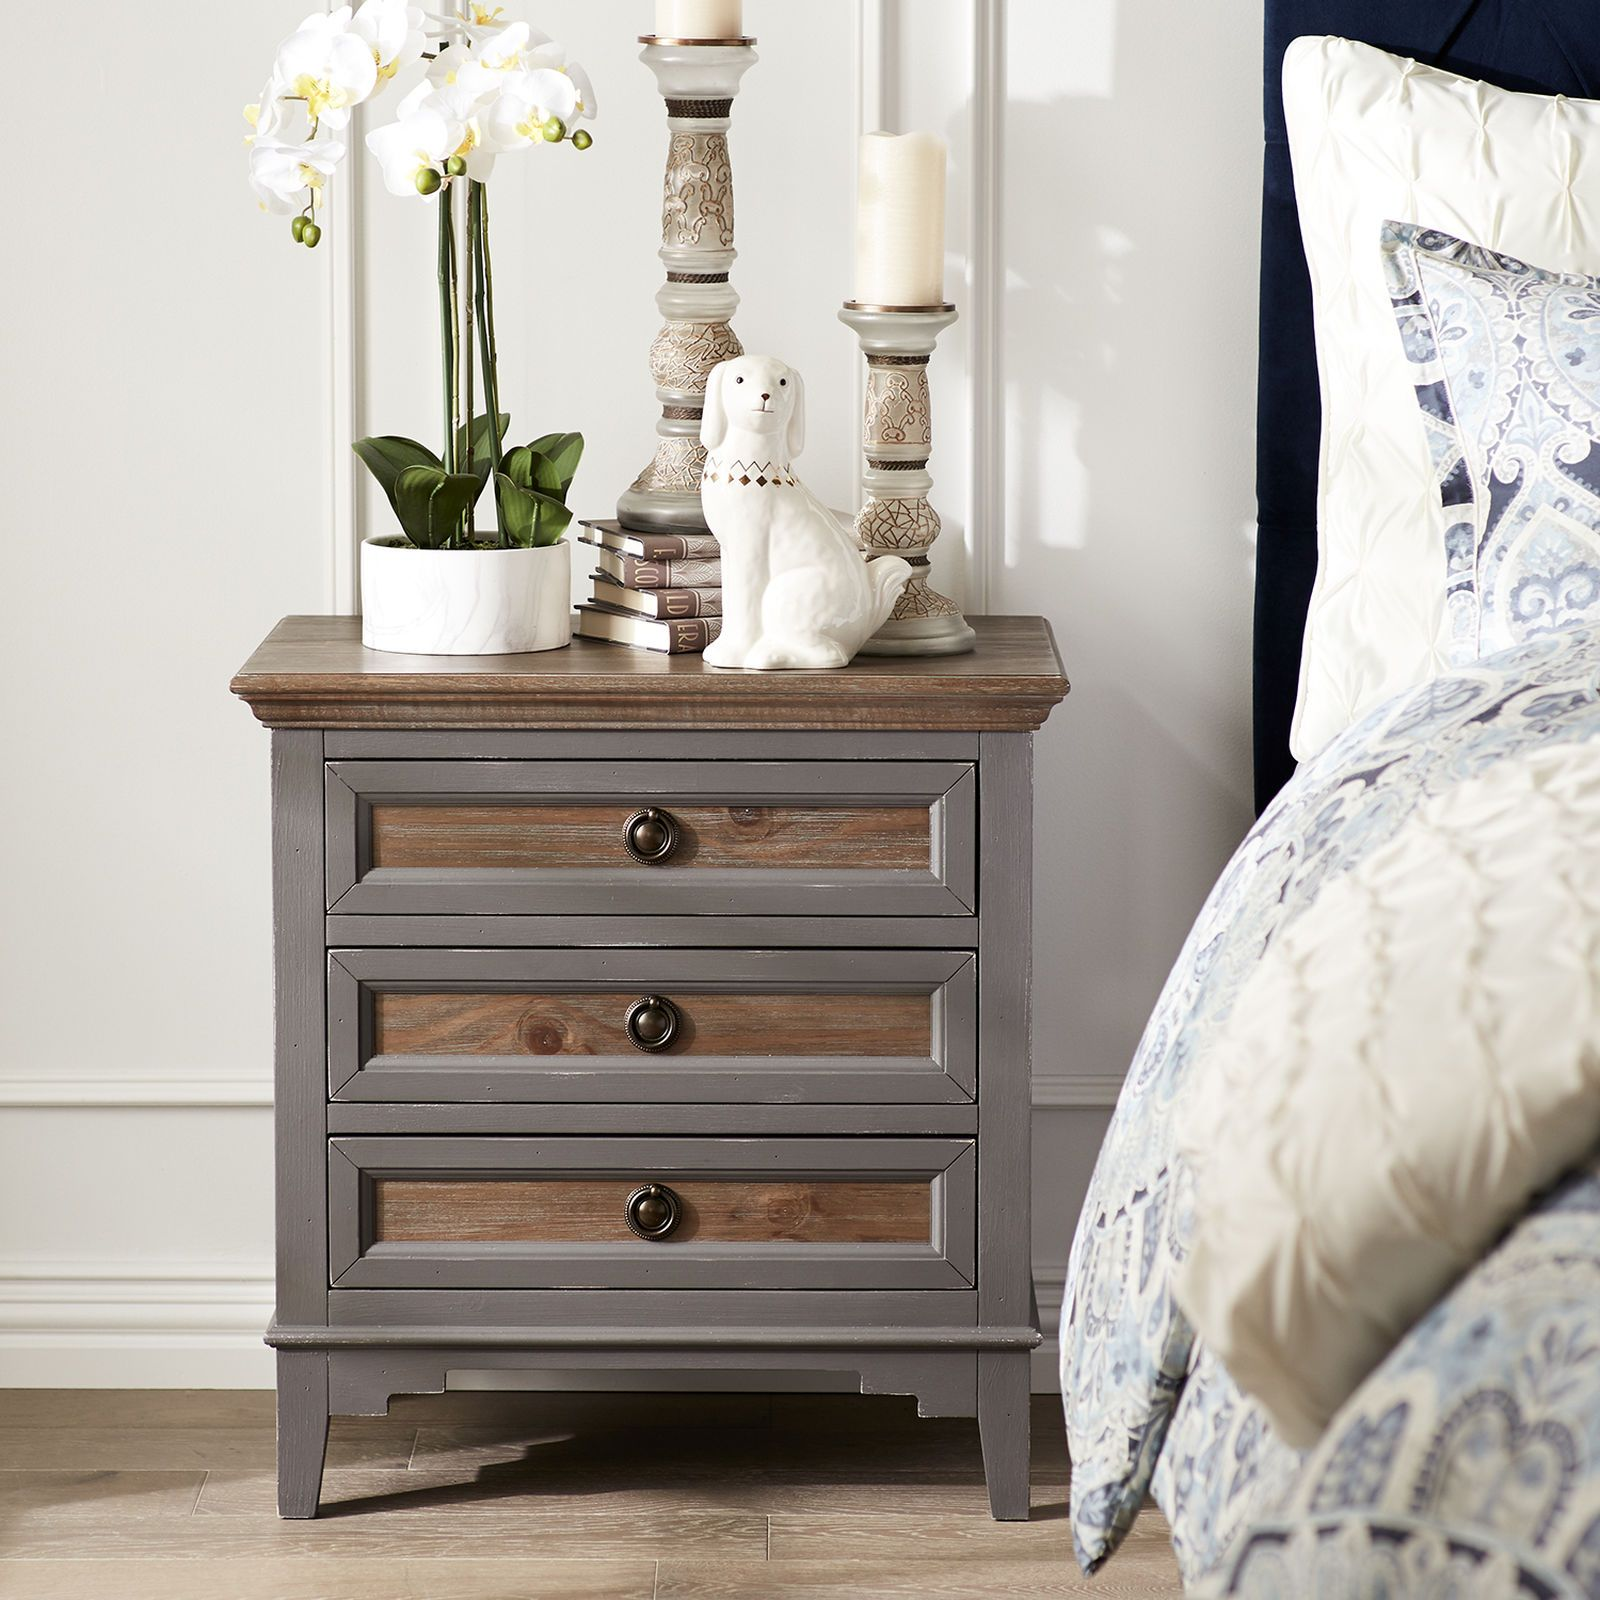 Weston Slate Bedside Chest With Saddle Wood Pier 1 Imports Furniture Home Decor Bedroom Rustic Bedside Table